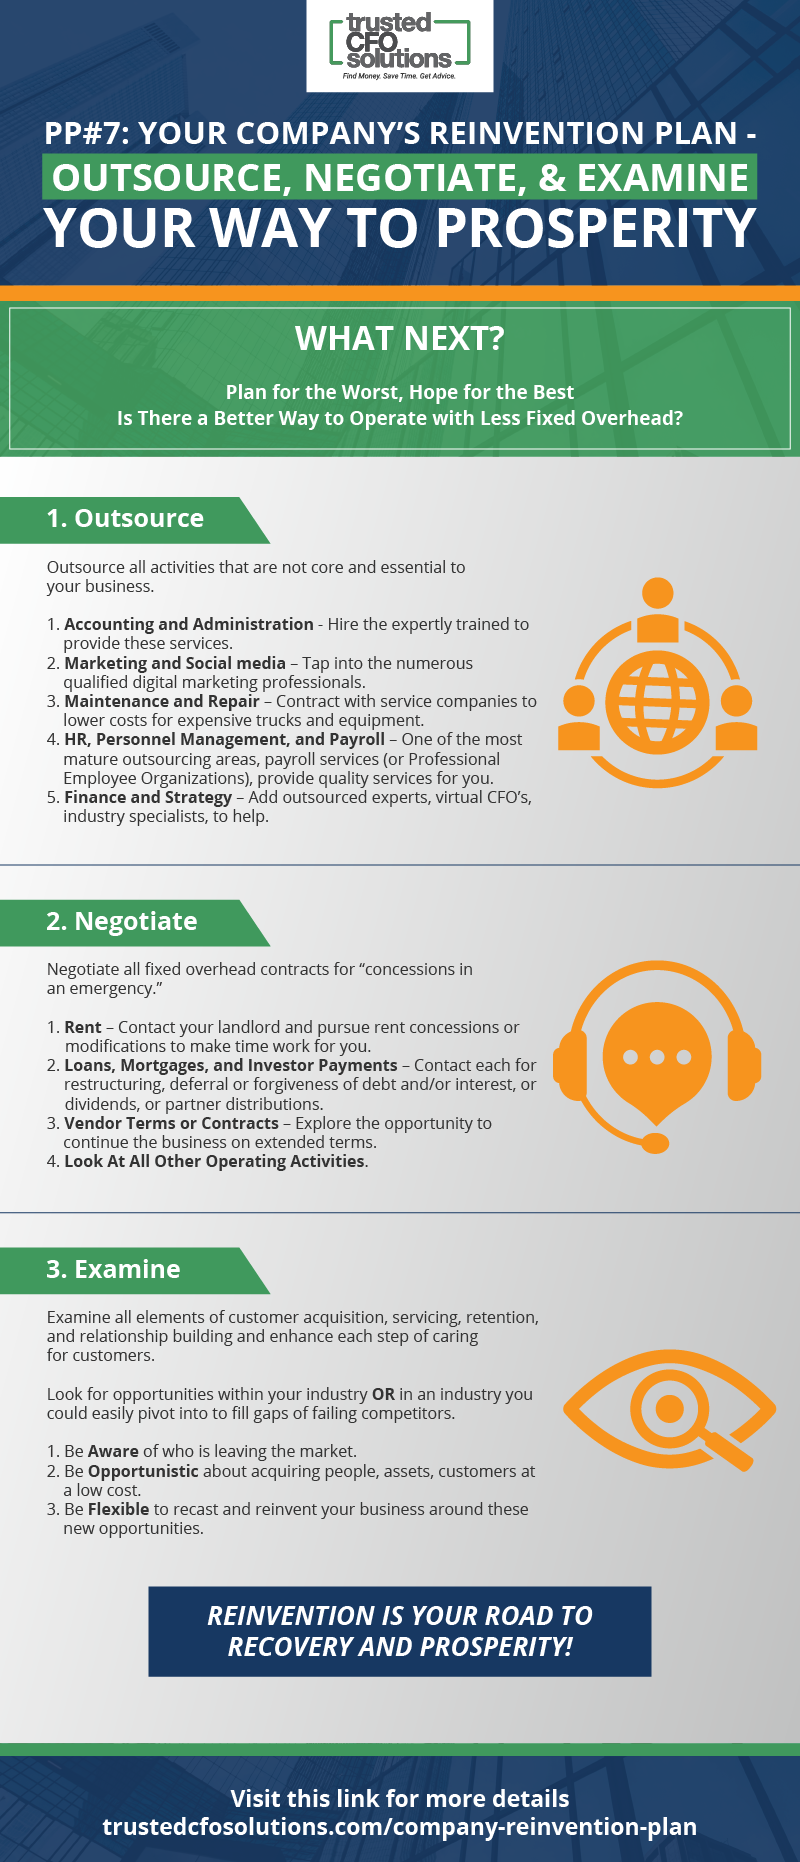 Prosper or Perish #7: Your Company's Reinvention Plan — Outsource, Negotiate, & Examine Your Way To Prosperity Infographic